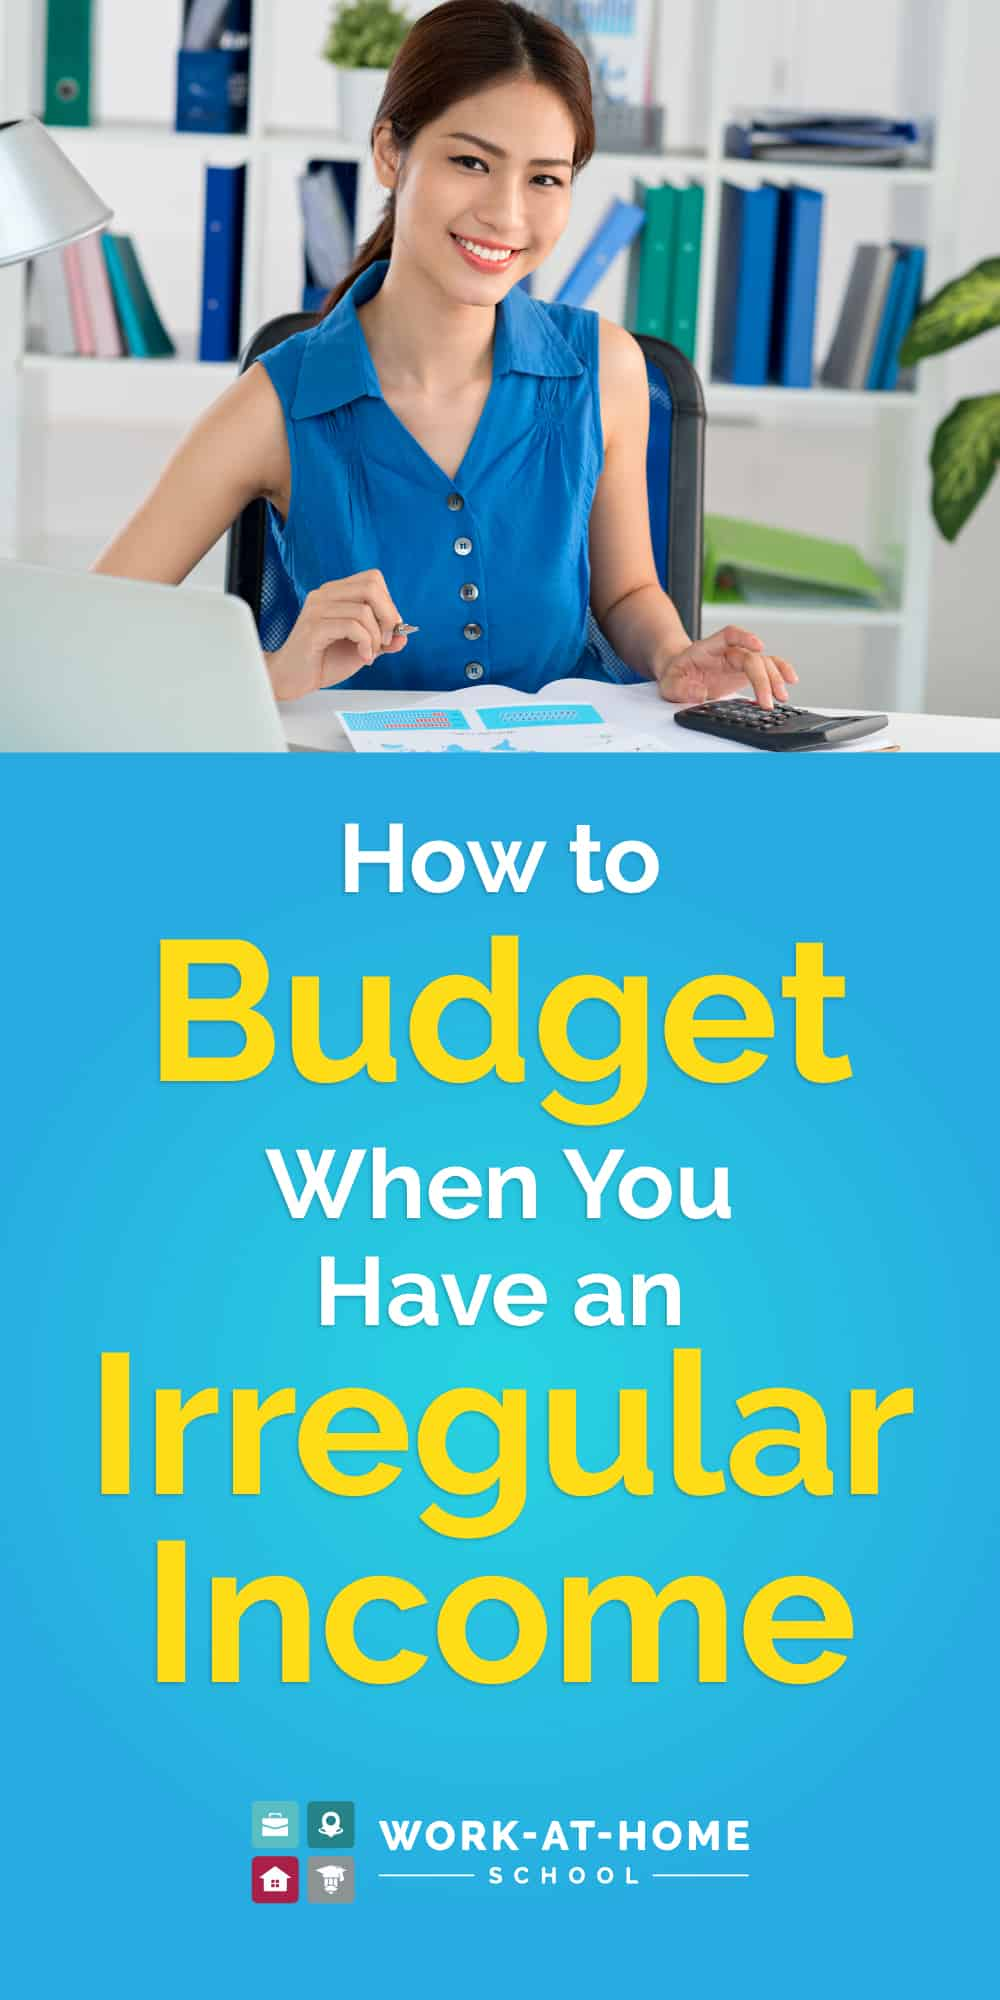 Learn how to budget on an irregular income with these tips from a money expert!